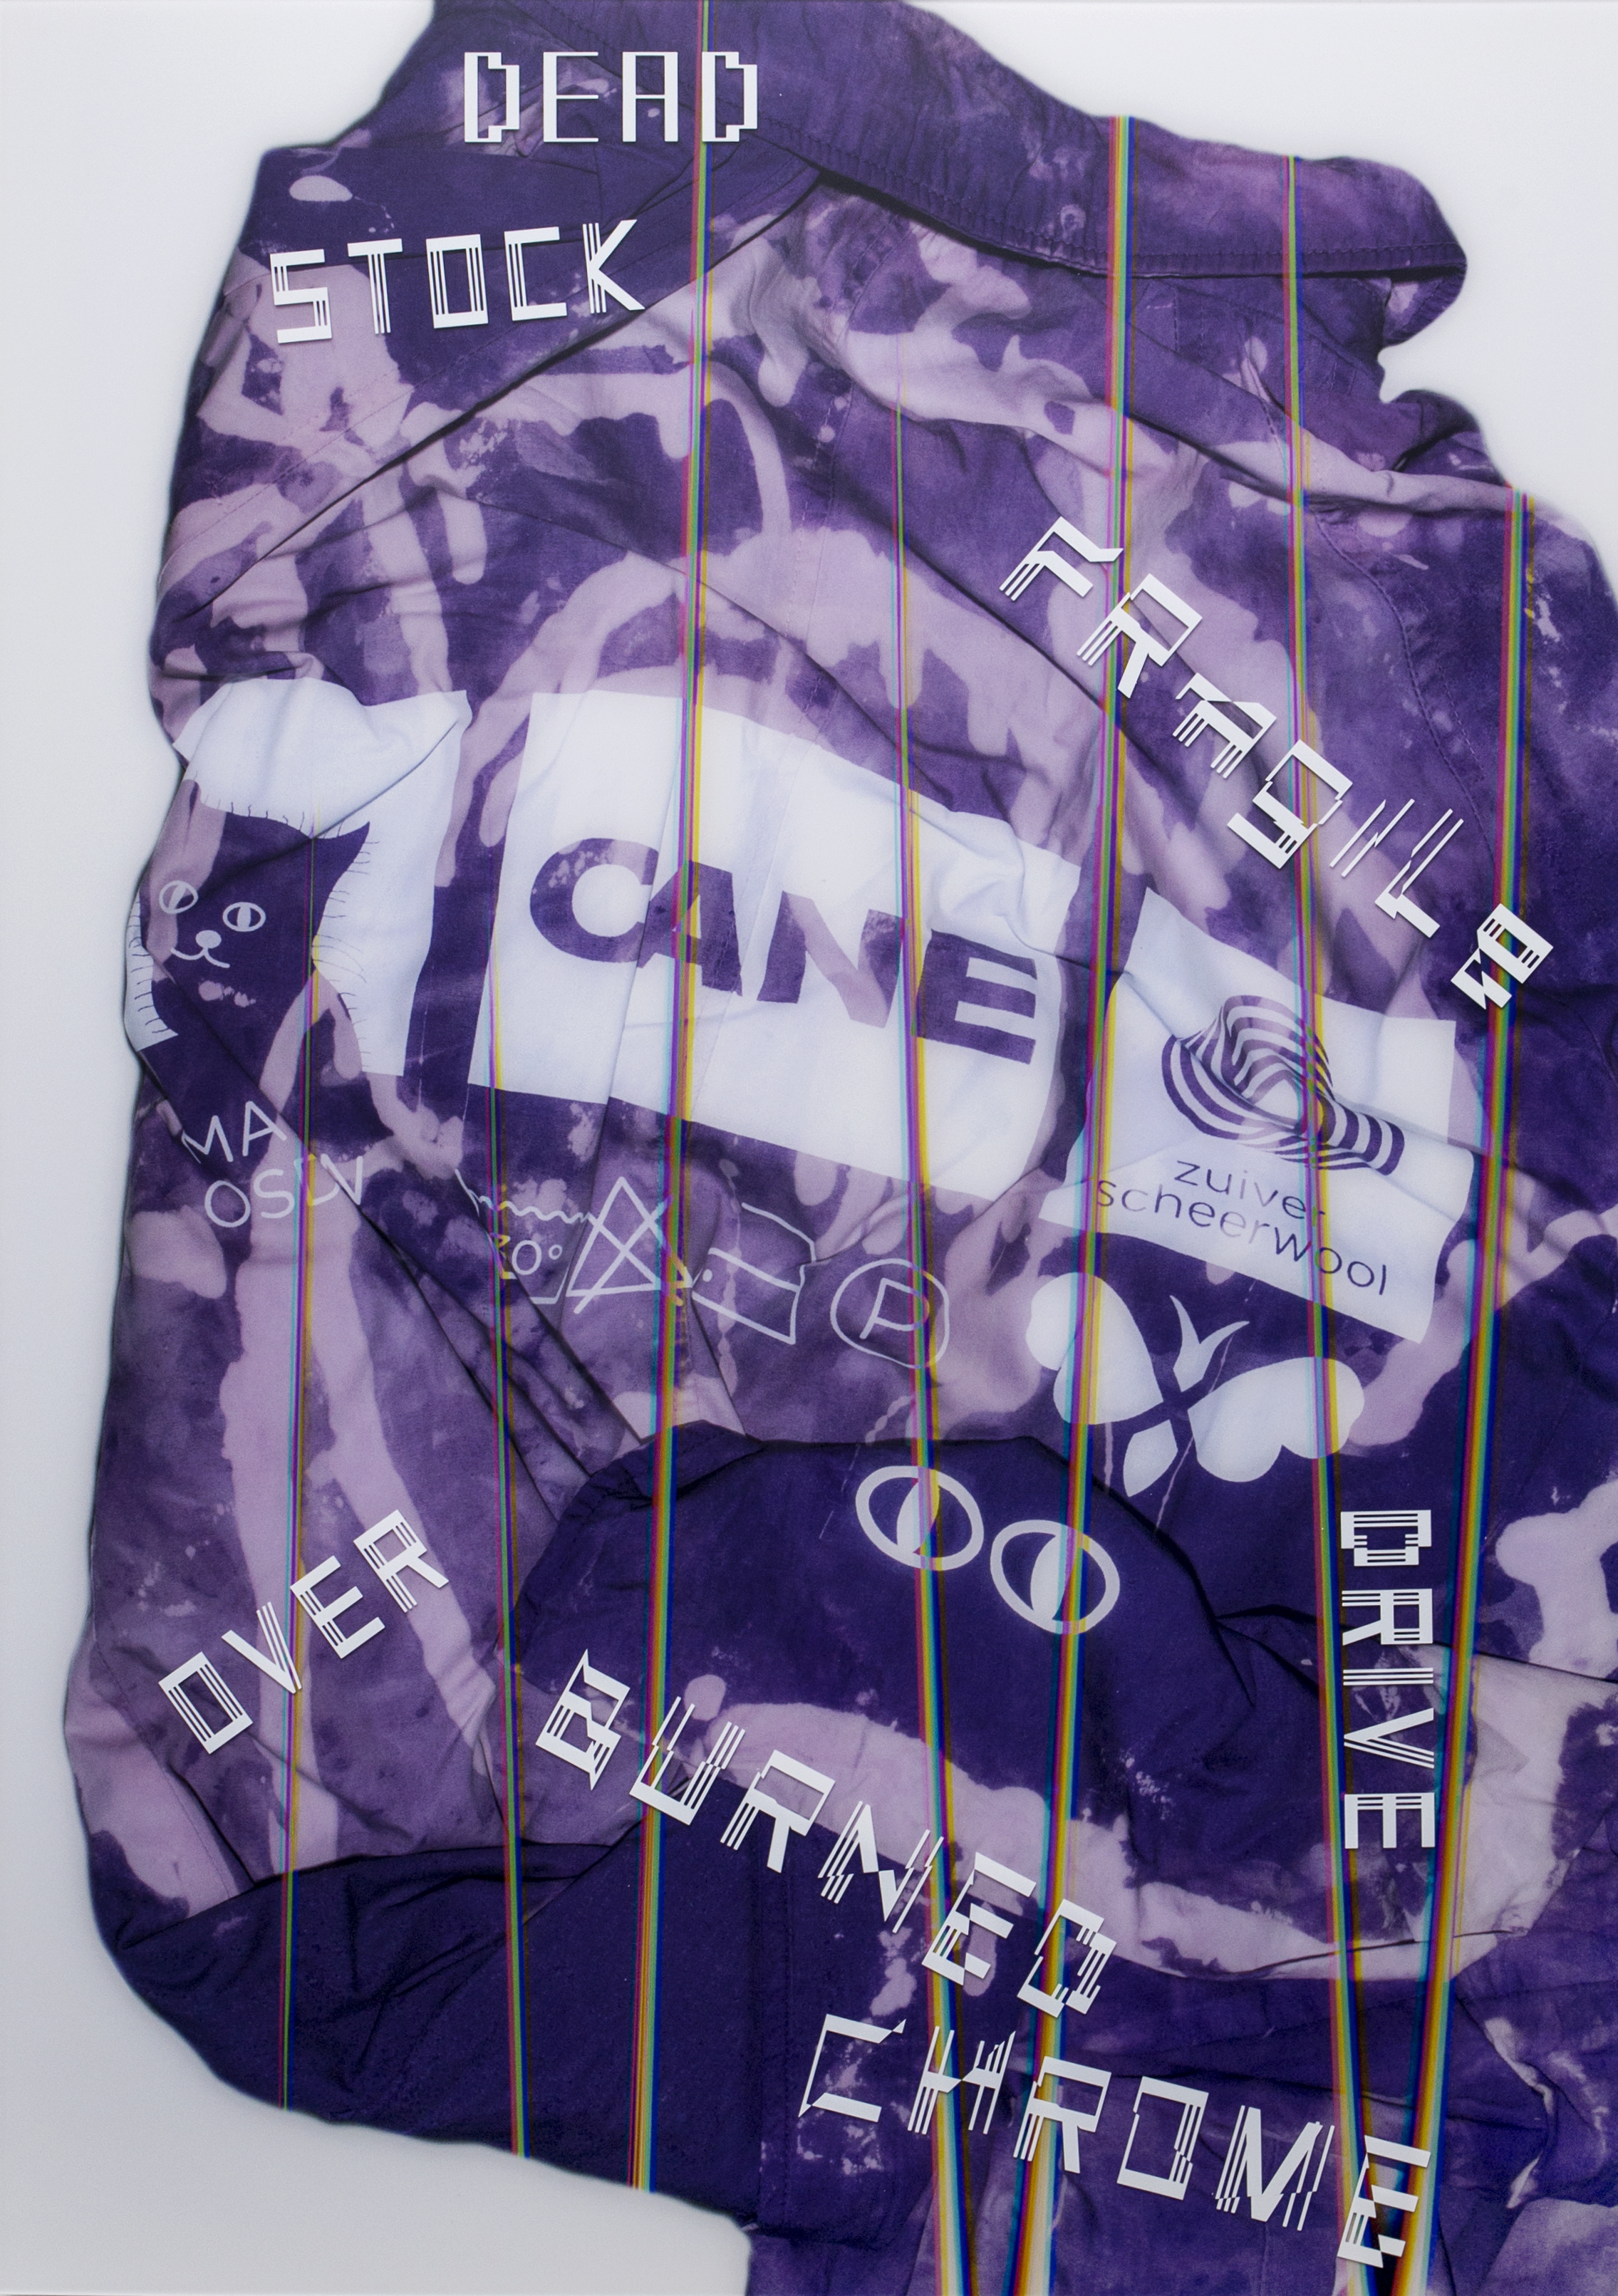 Purple Lizotte - Avoidstreet, Purple Lizotte, 2018life-size scan, inkjet print, vinyl on diasec aluminum, 84,10 x 118,9 cm, courtesy of Mikel Orfanos, unique€ 2.000,- incl. VAT, certificate of authenticity